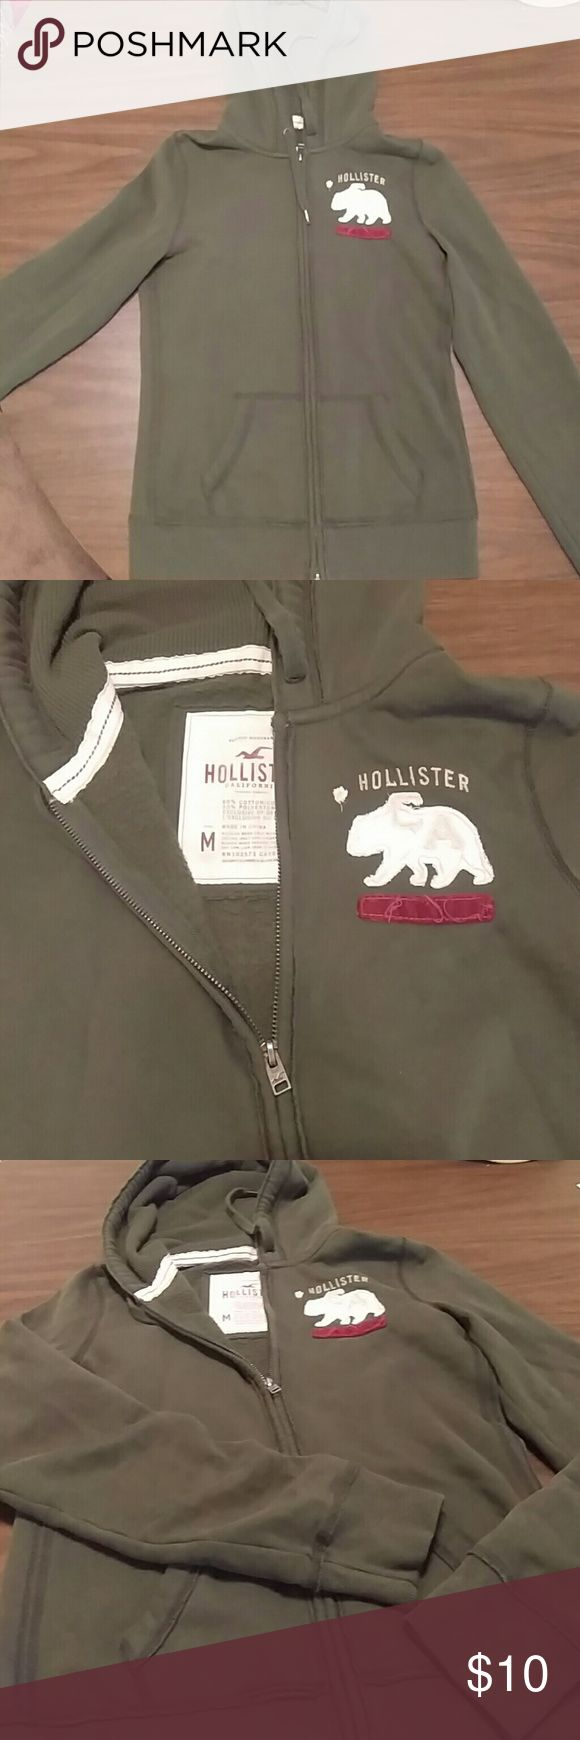 Hollister army green zip up hoodie Warm and soft zip up goody with bear applique on left chest. Good condition Hollister Tops Sweatshirts & Hoodies